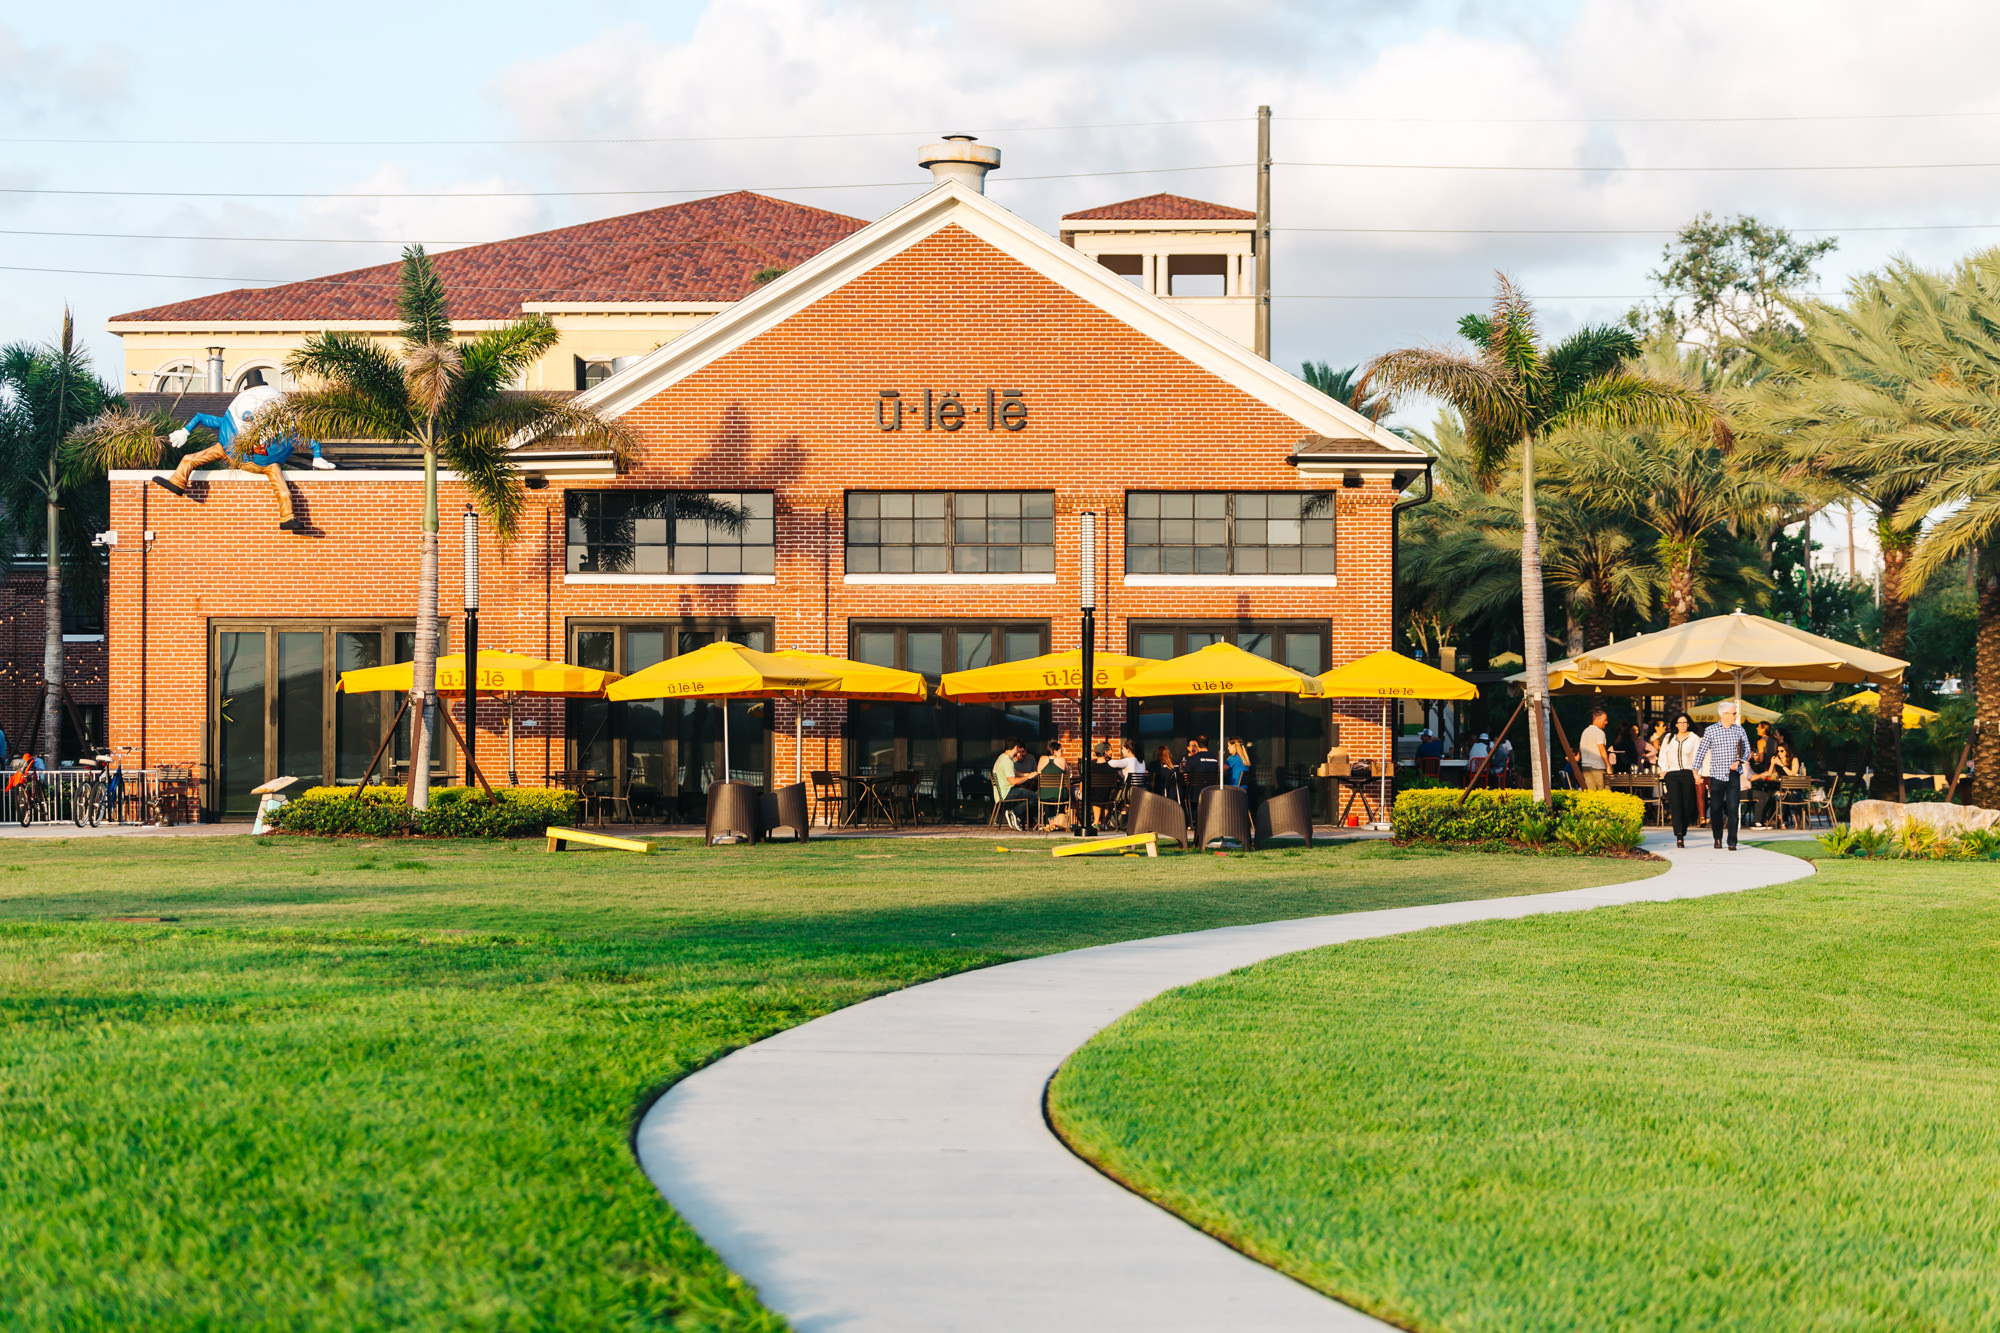 Tampa S Popular Native Inspired Restaurant At Ulele On The